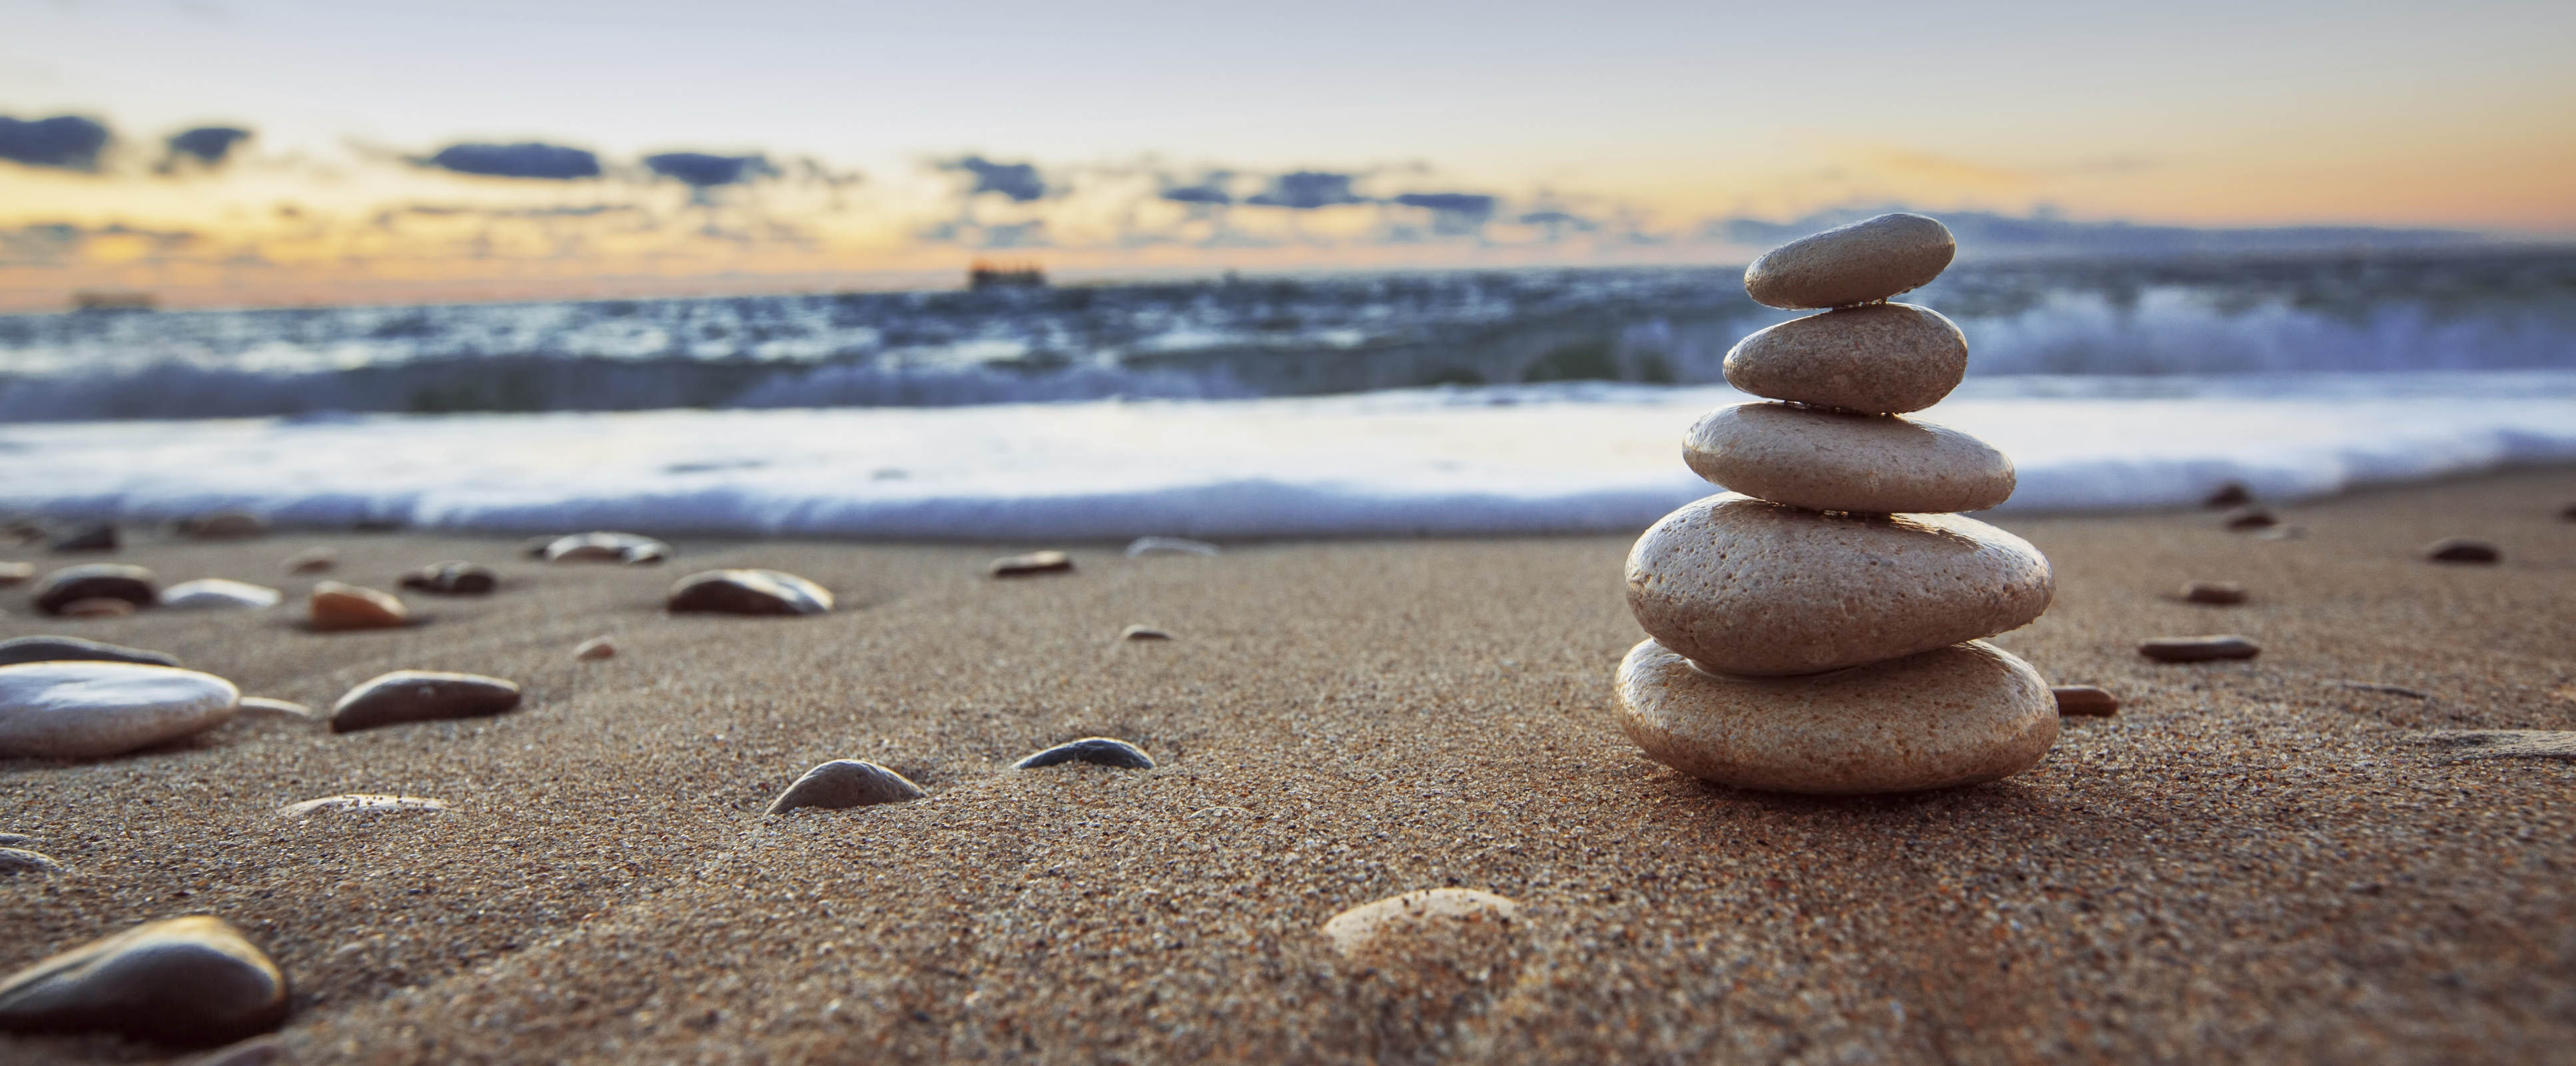 The Zen List Technique: My Radical Method For Reducing Stress And Intensifying Focus